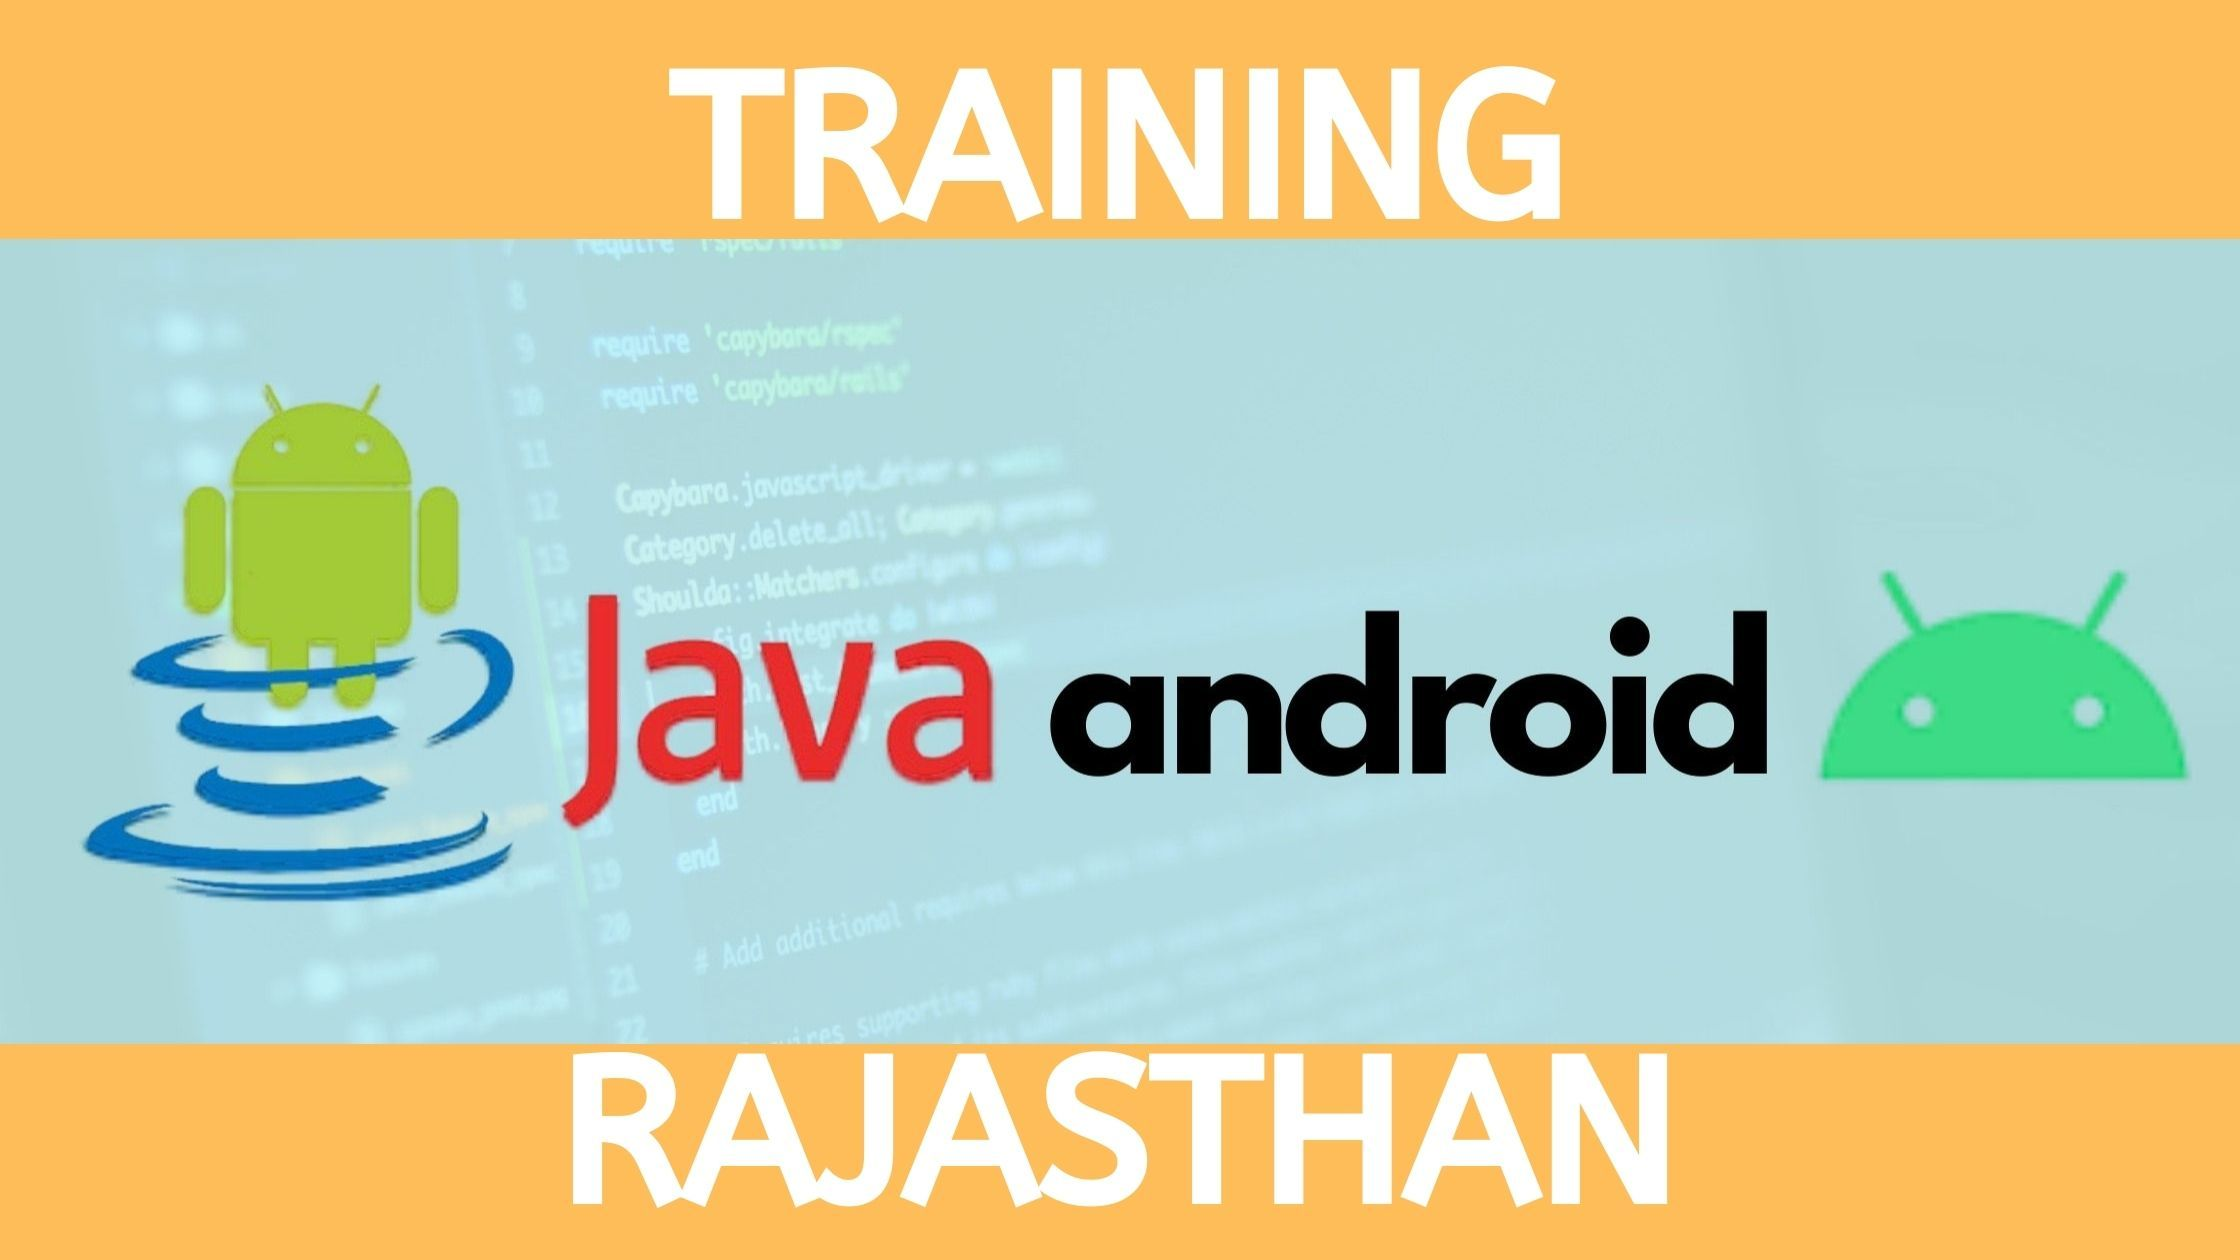 java_android_training_in_rajasthan-background.jpeg